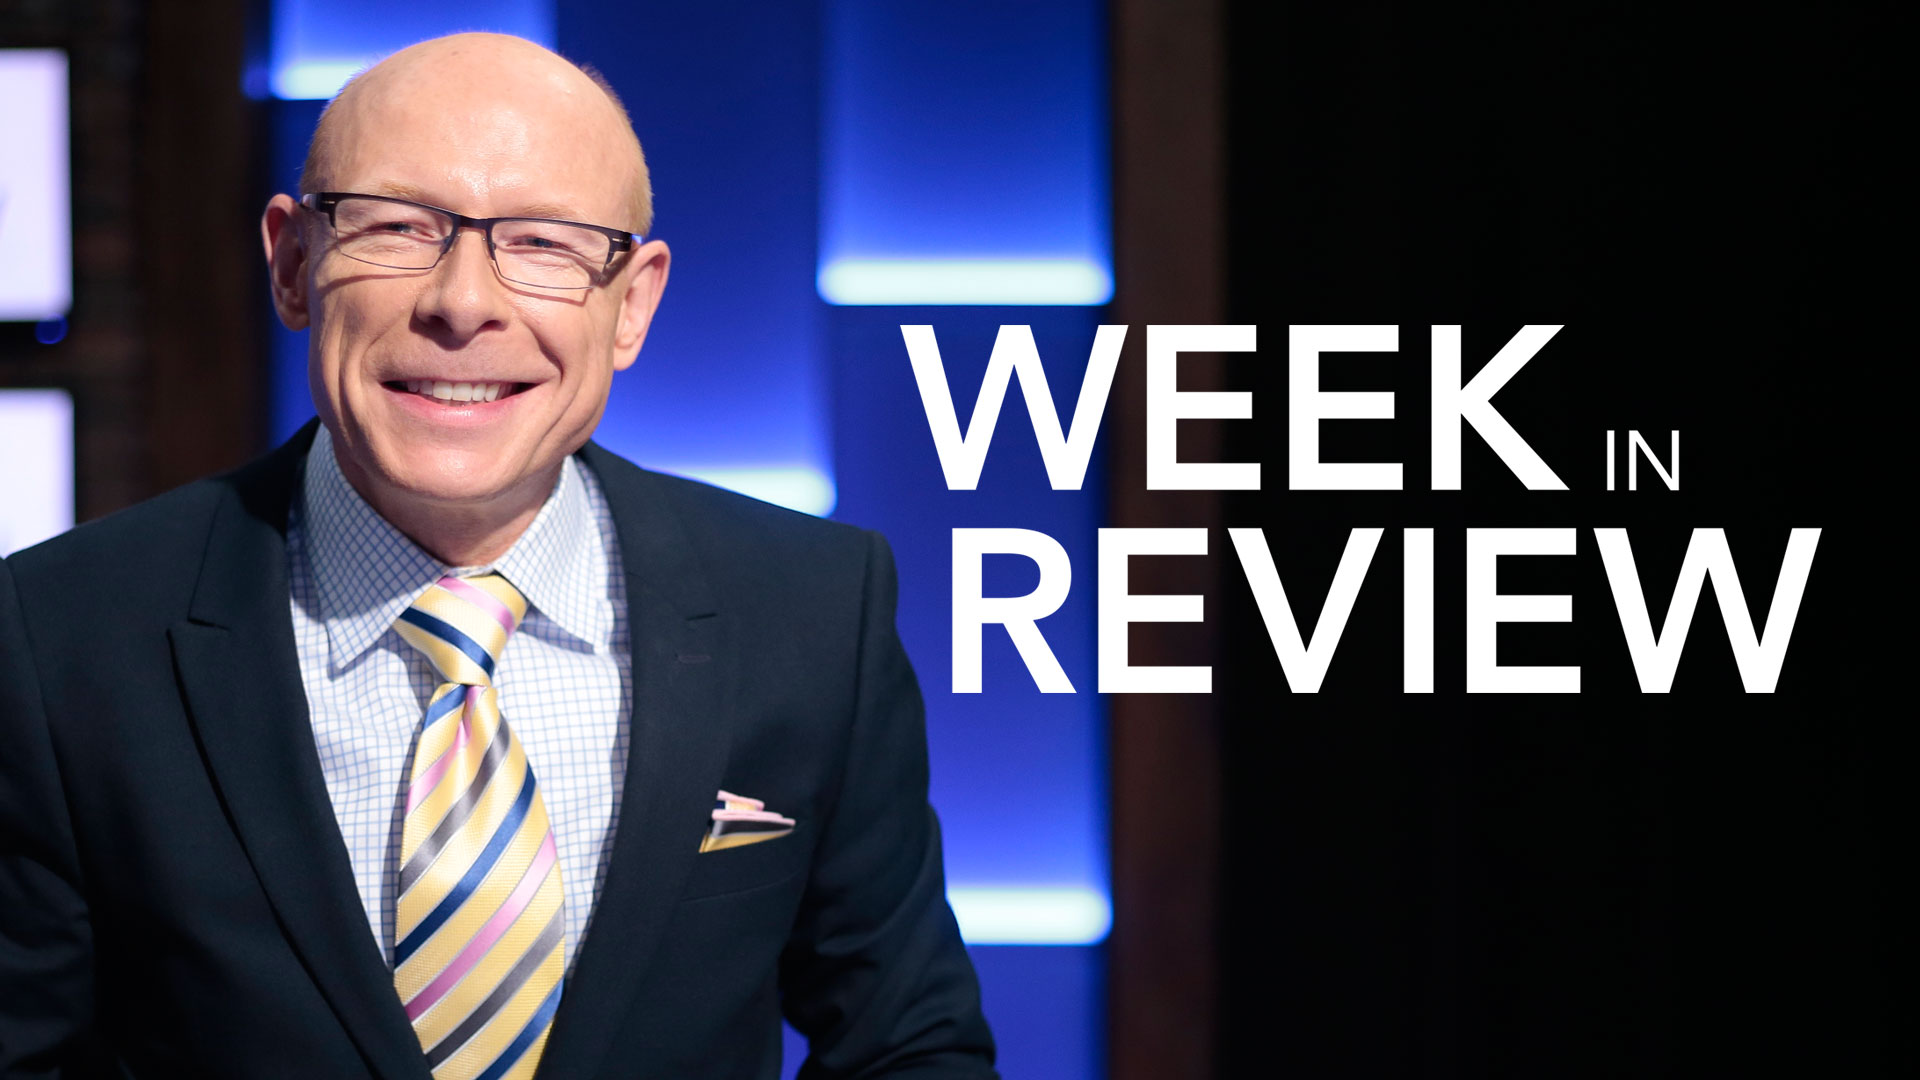 Week in Review - 7:30 p.m. Friday